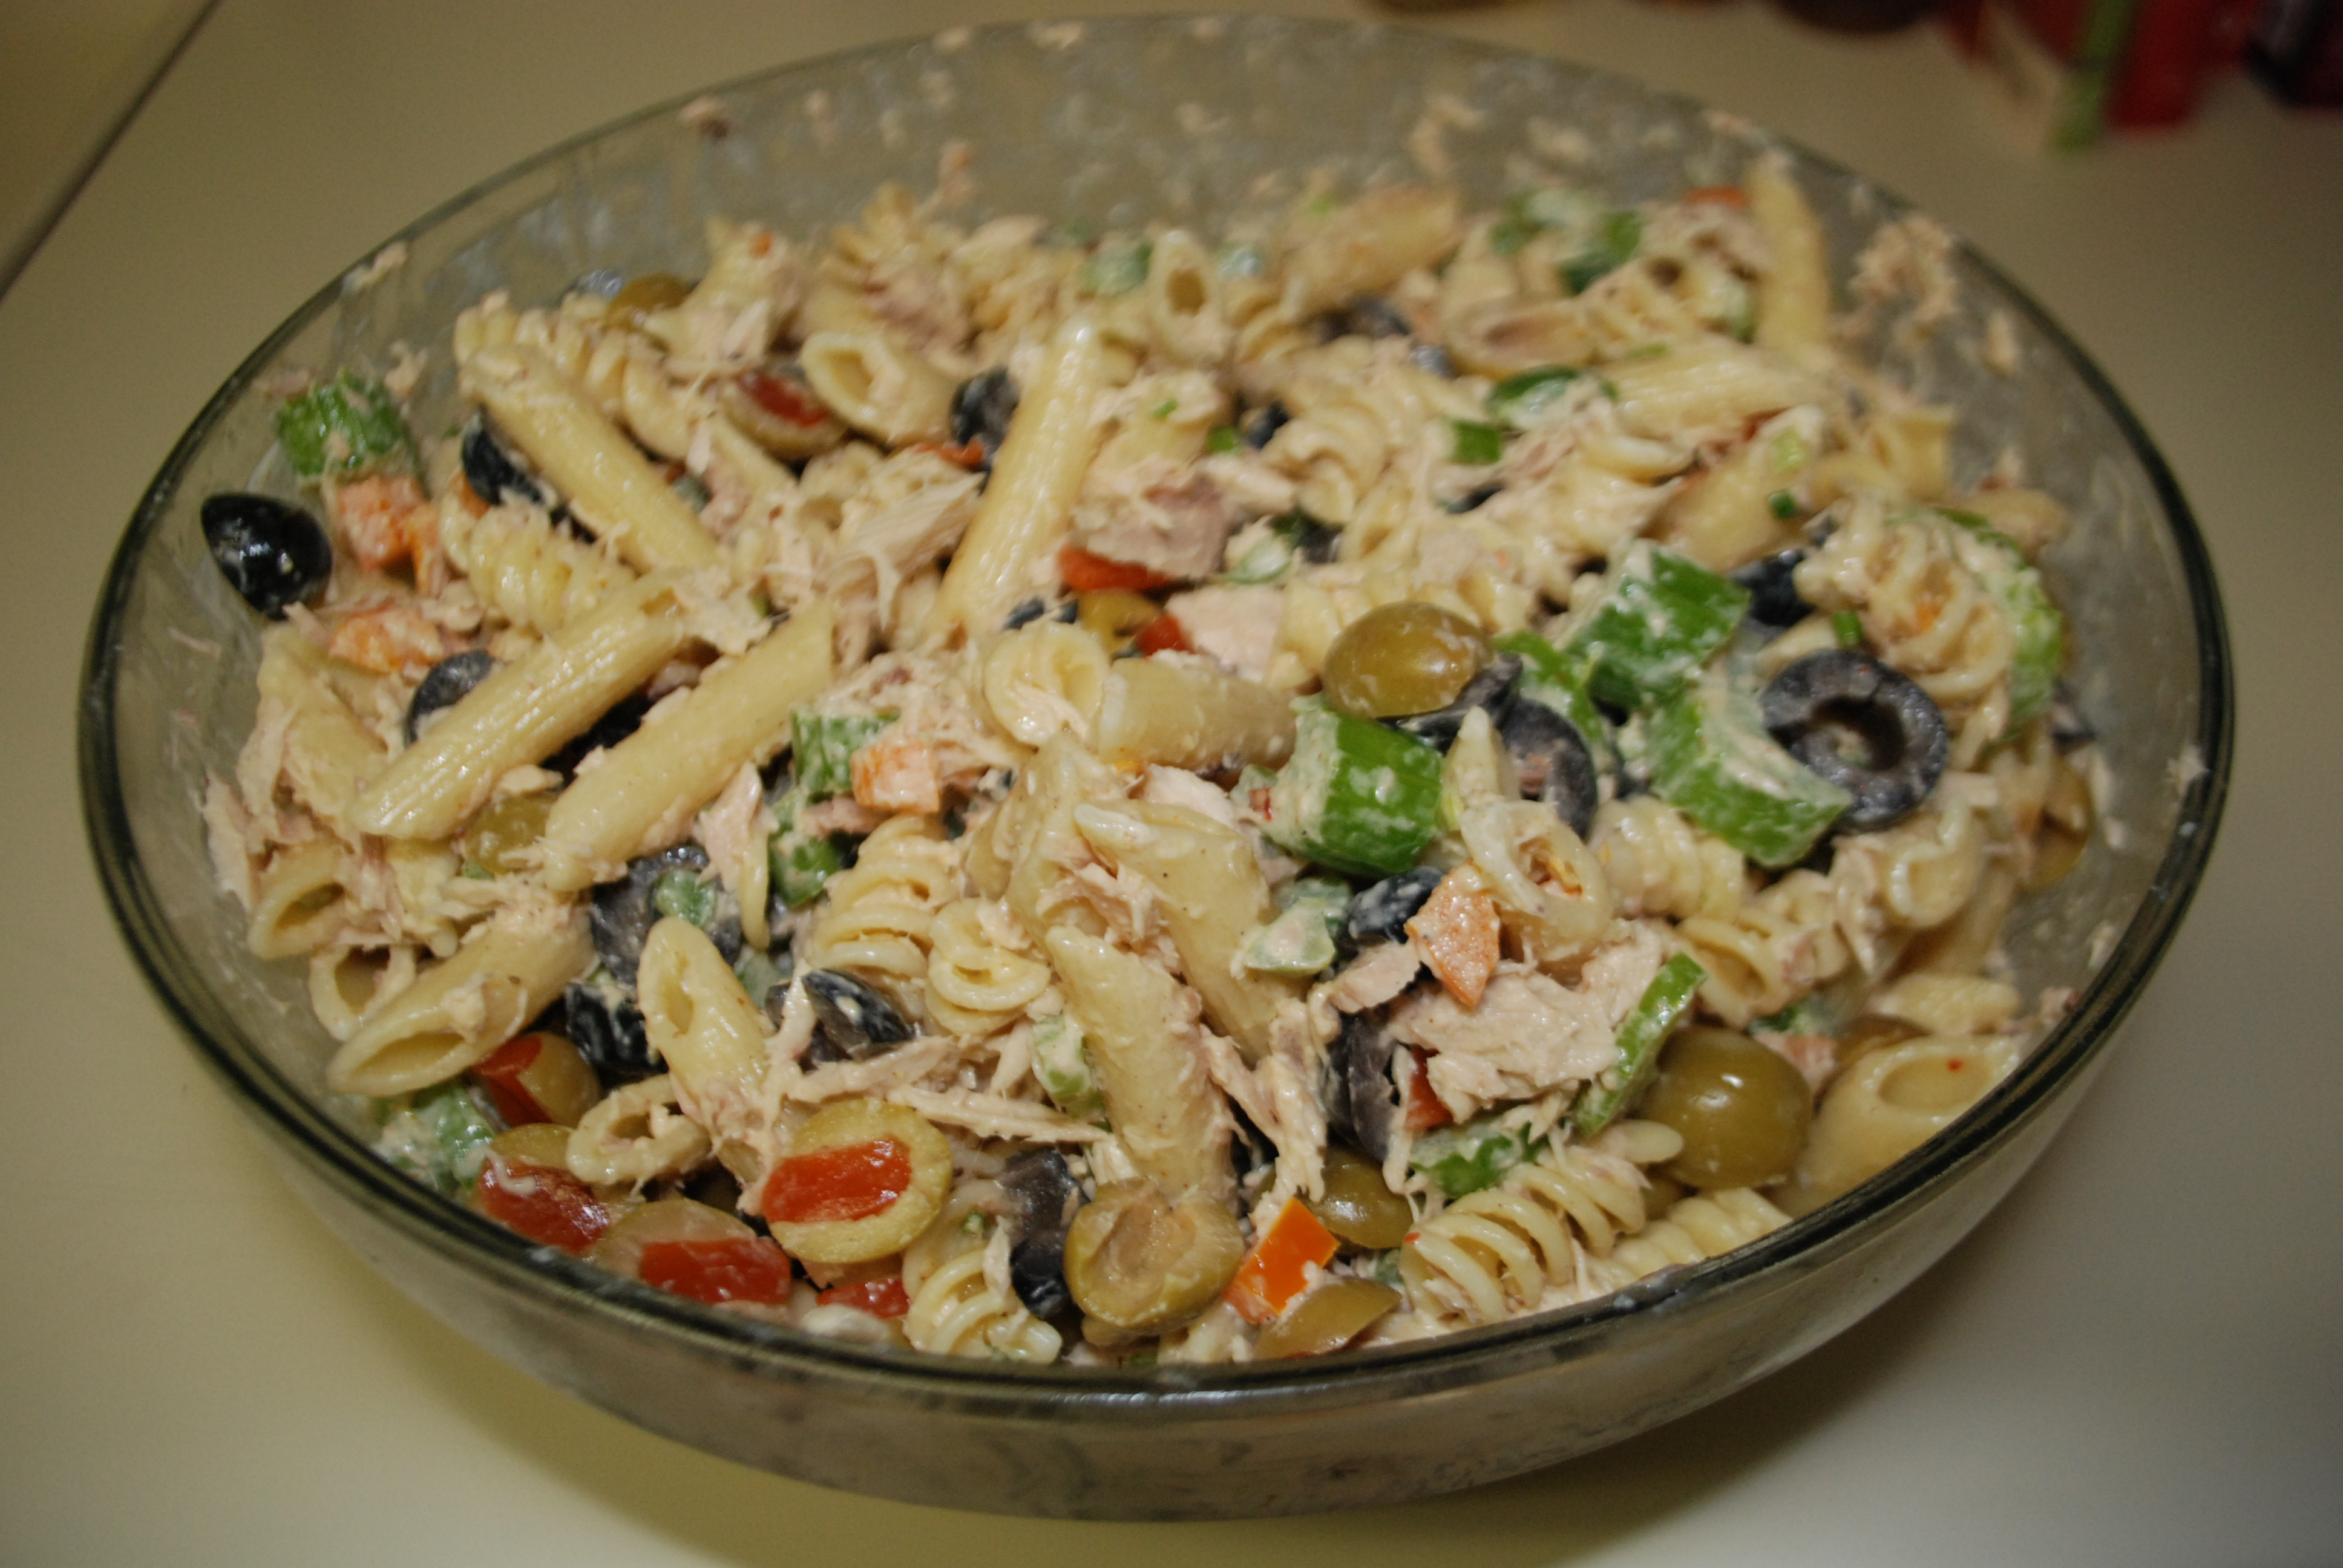 Tuna pasta salad culture jaunt for Macaroni salad with tuna fish